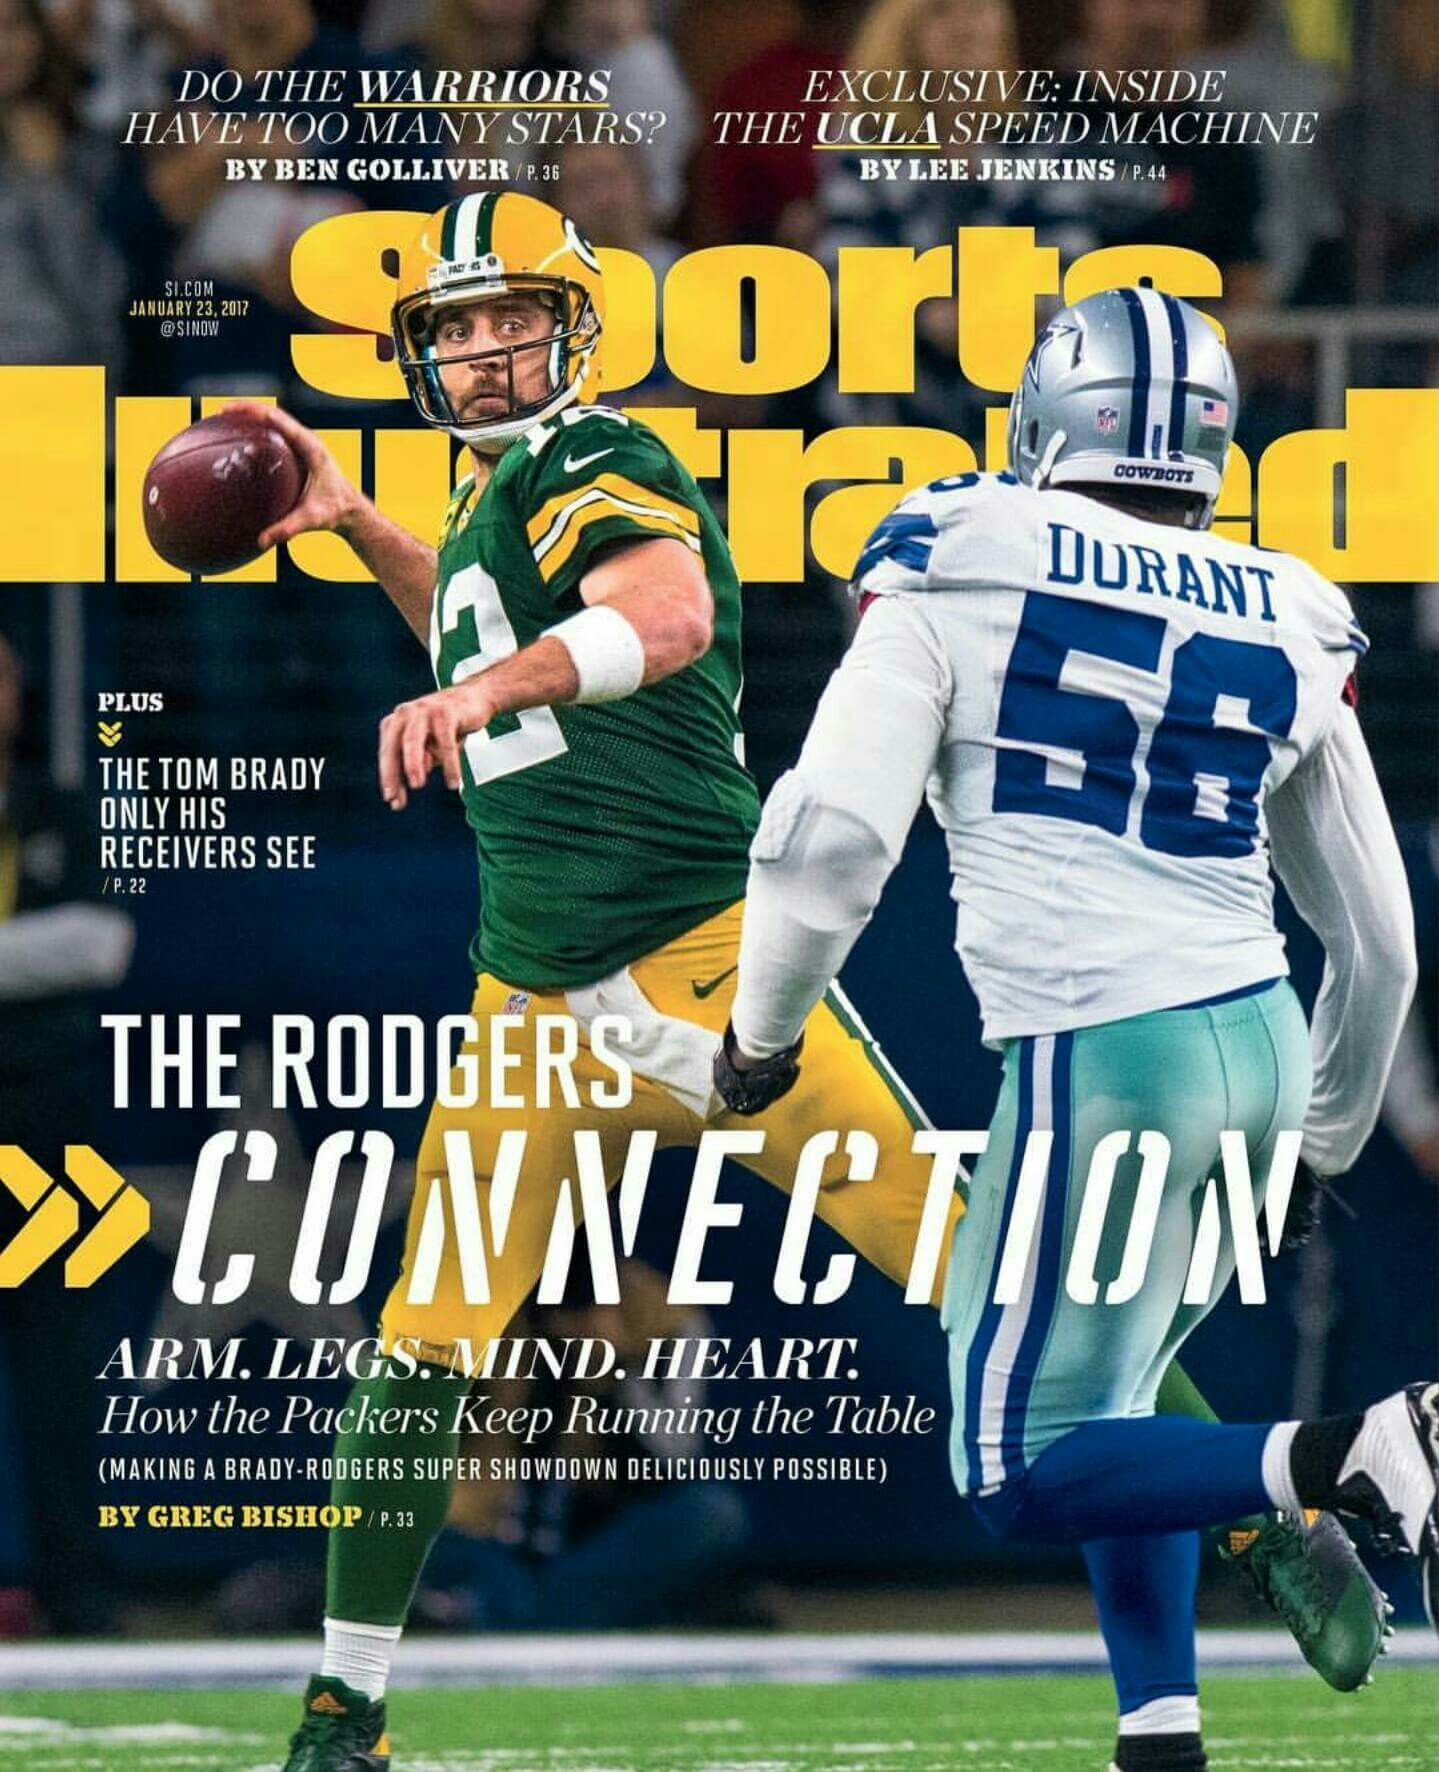 Pin By Erika Saeppa Lovingfoss On Go Pack Go Green Bay Packers Packers Sports Illustrated Covers